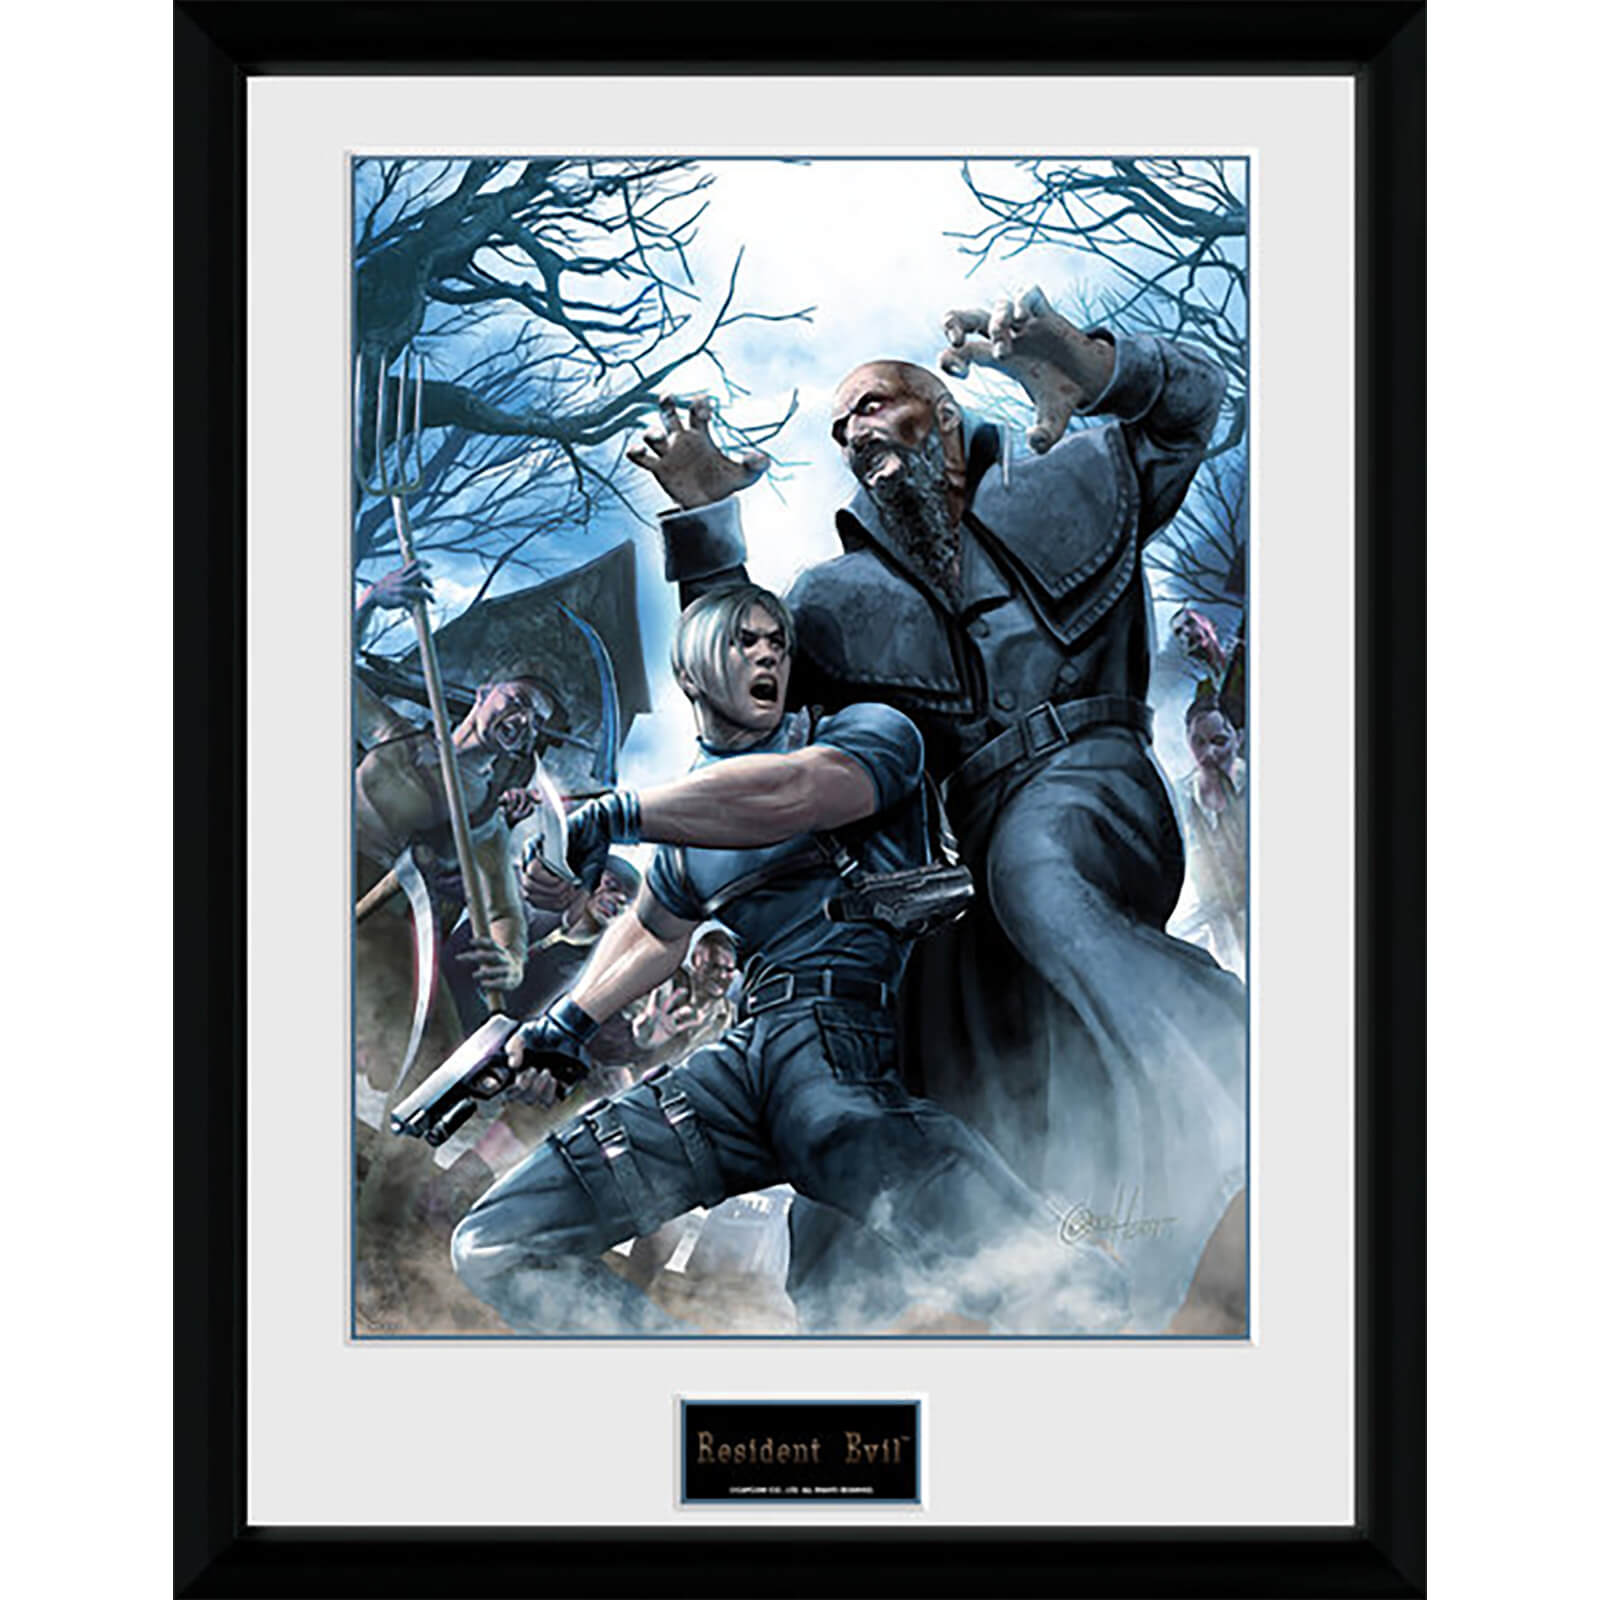 Resident Evil Leon - 16 x 12 Inches Framed Photograph